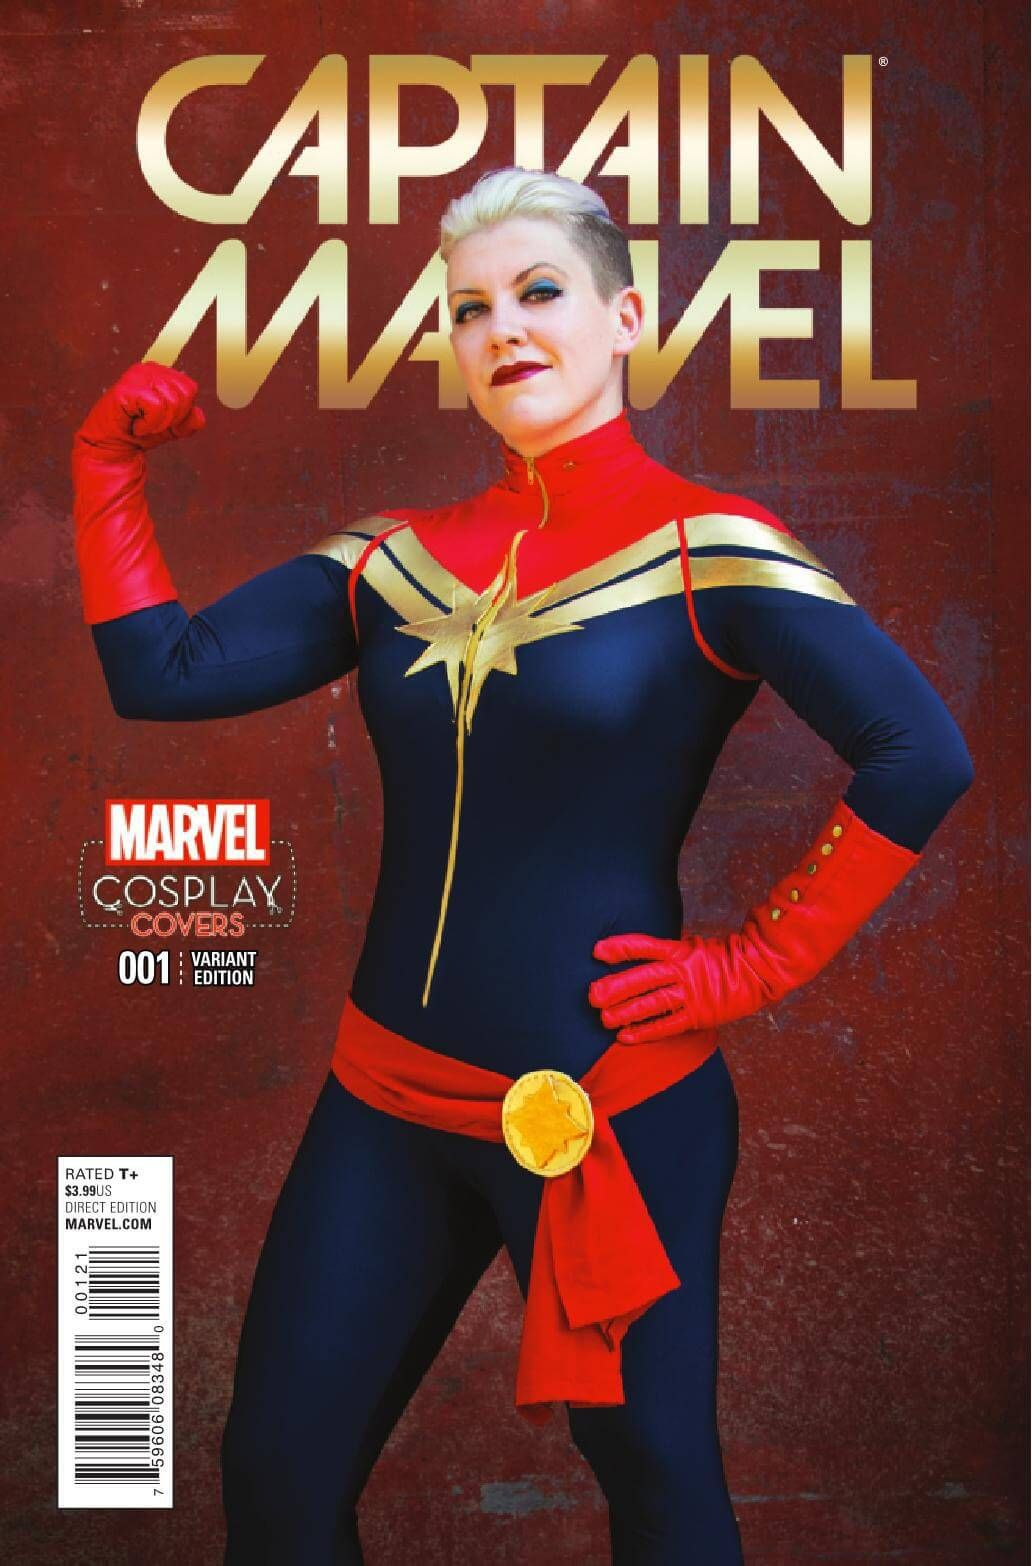 Cosplay variant cover of Captain Marvel #1, Marvel Comics (2016).